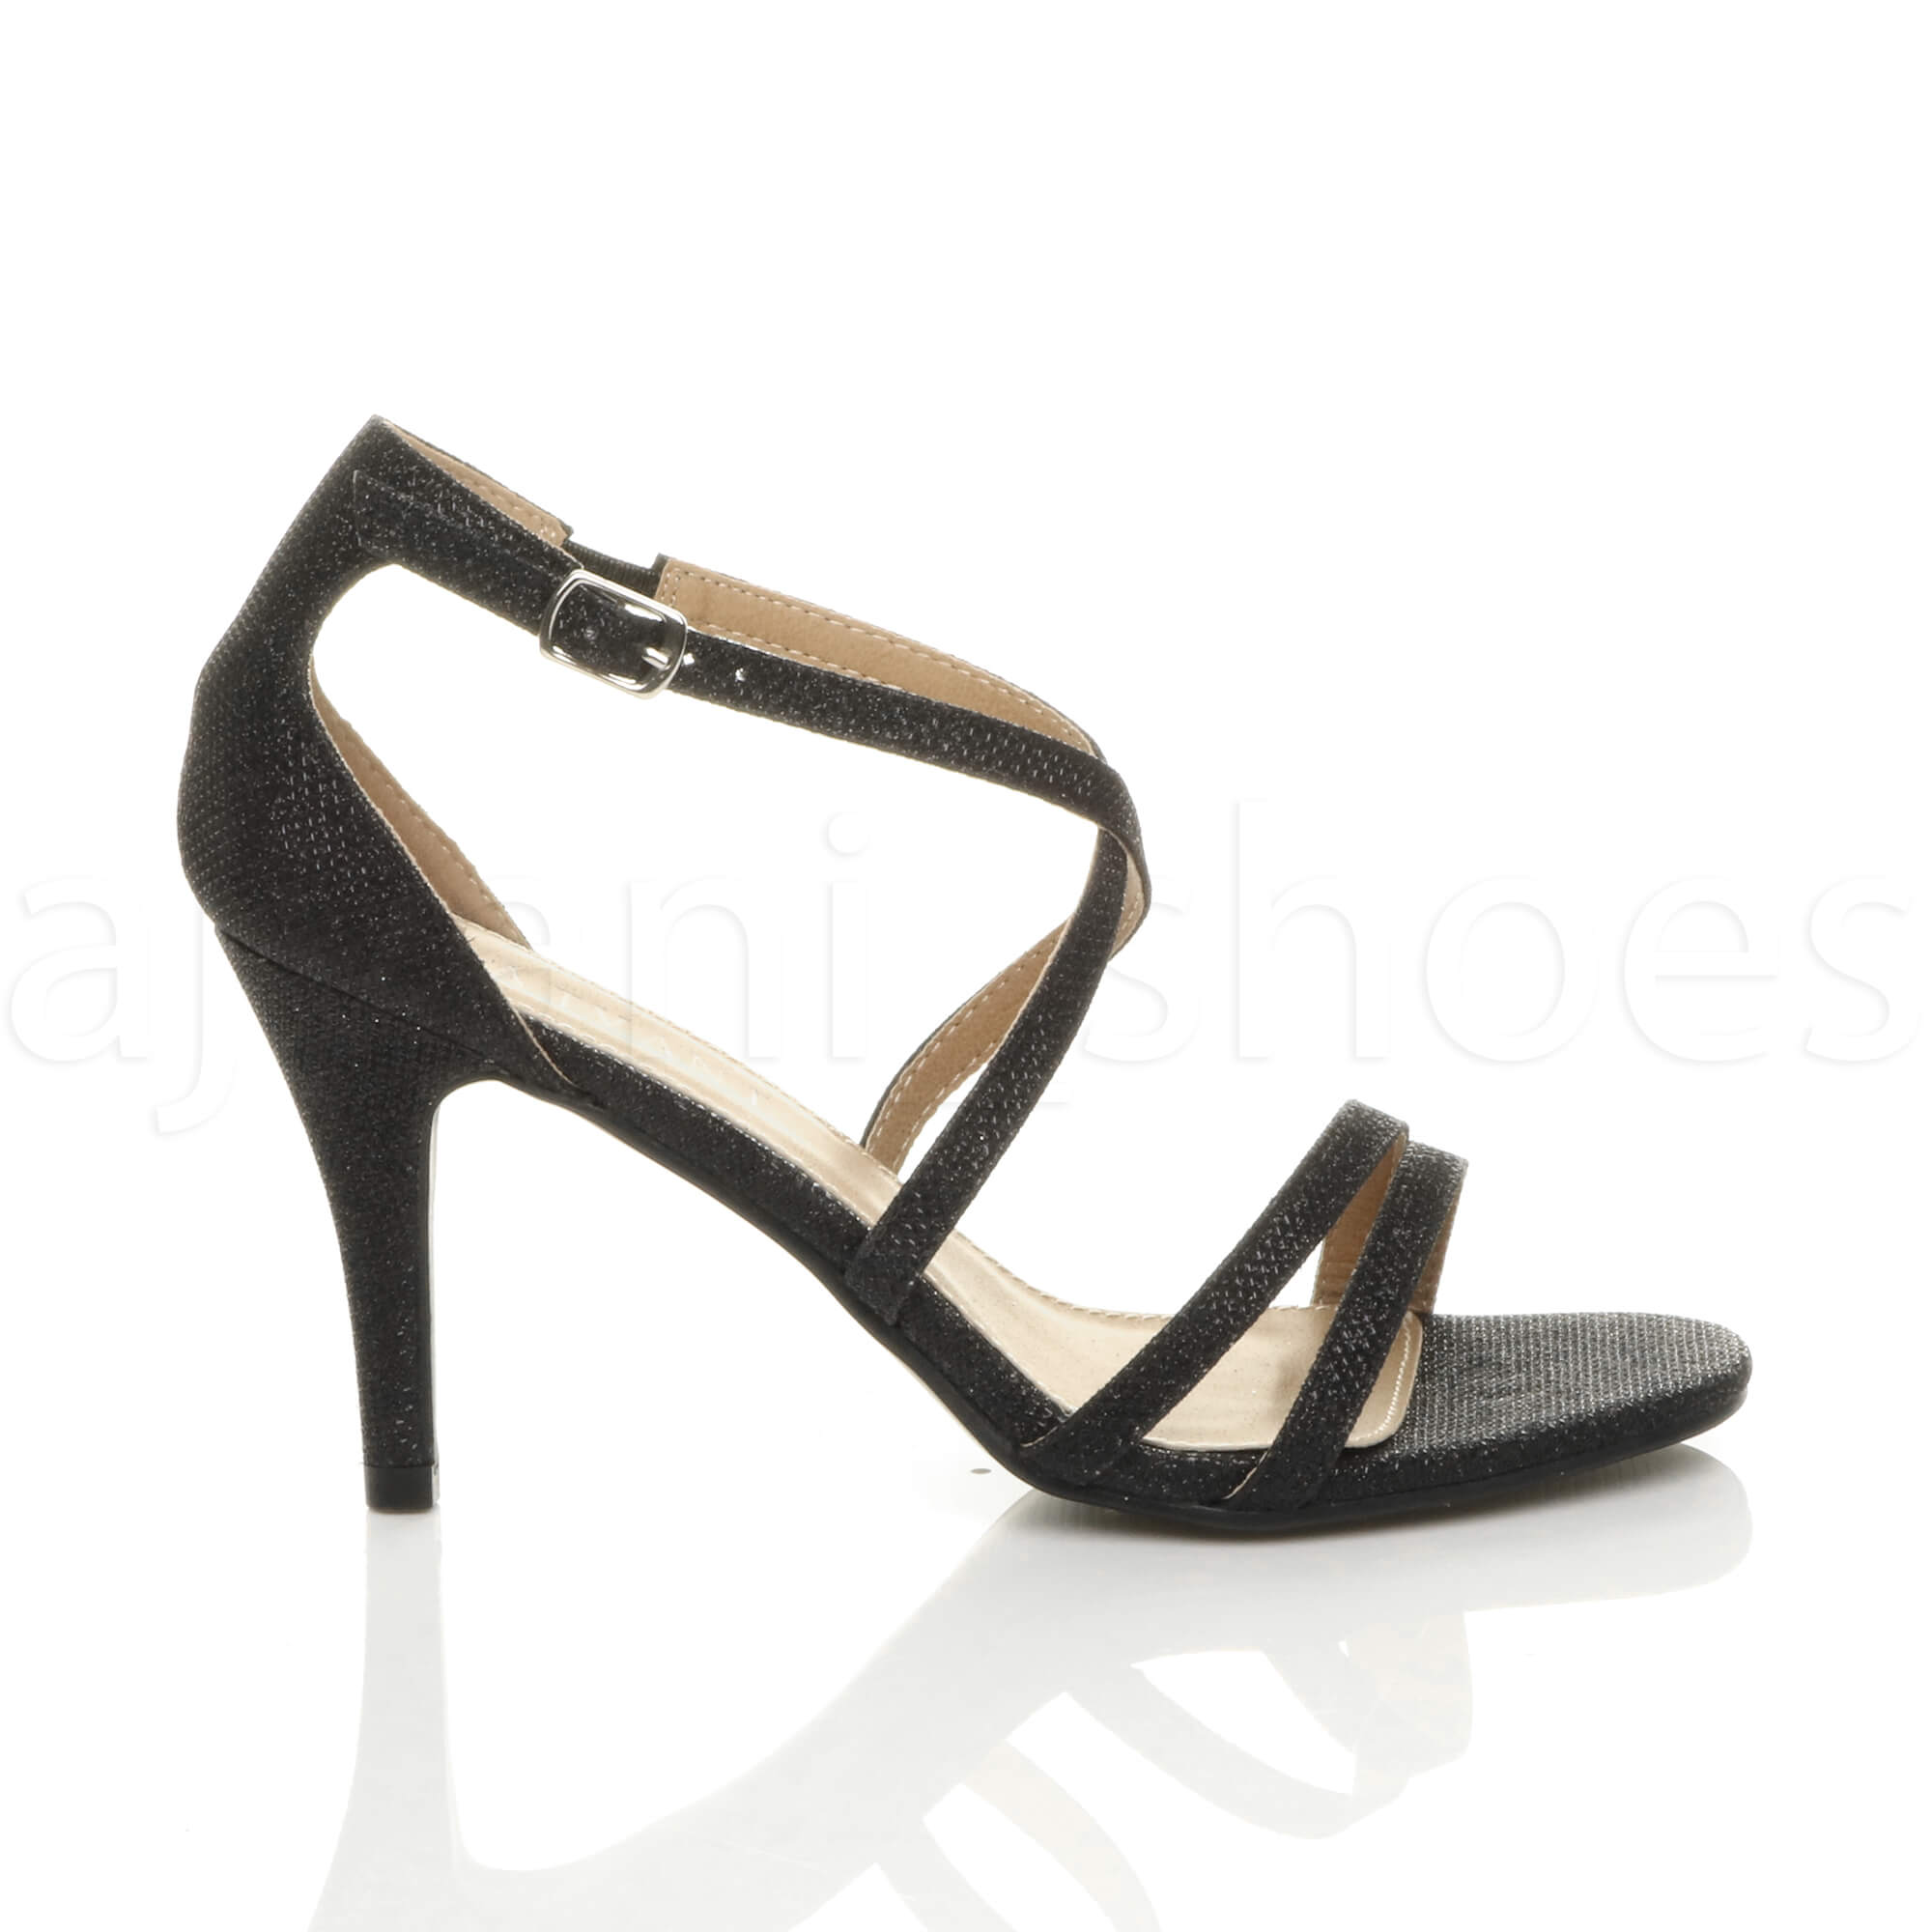 WOMENS-LADIES-MID-HIGH-HEEL-STRAPPY-CROSSOVER-WEDDING-PROM-SANDALS-SHOES-SIZE thumbnail 24